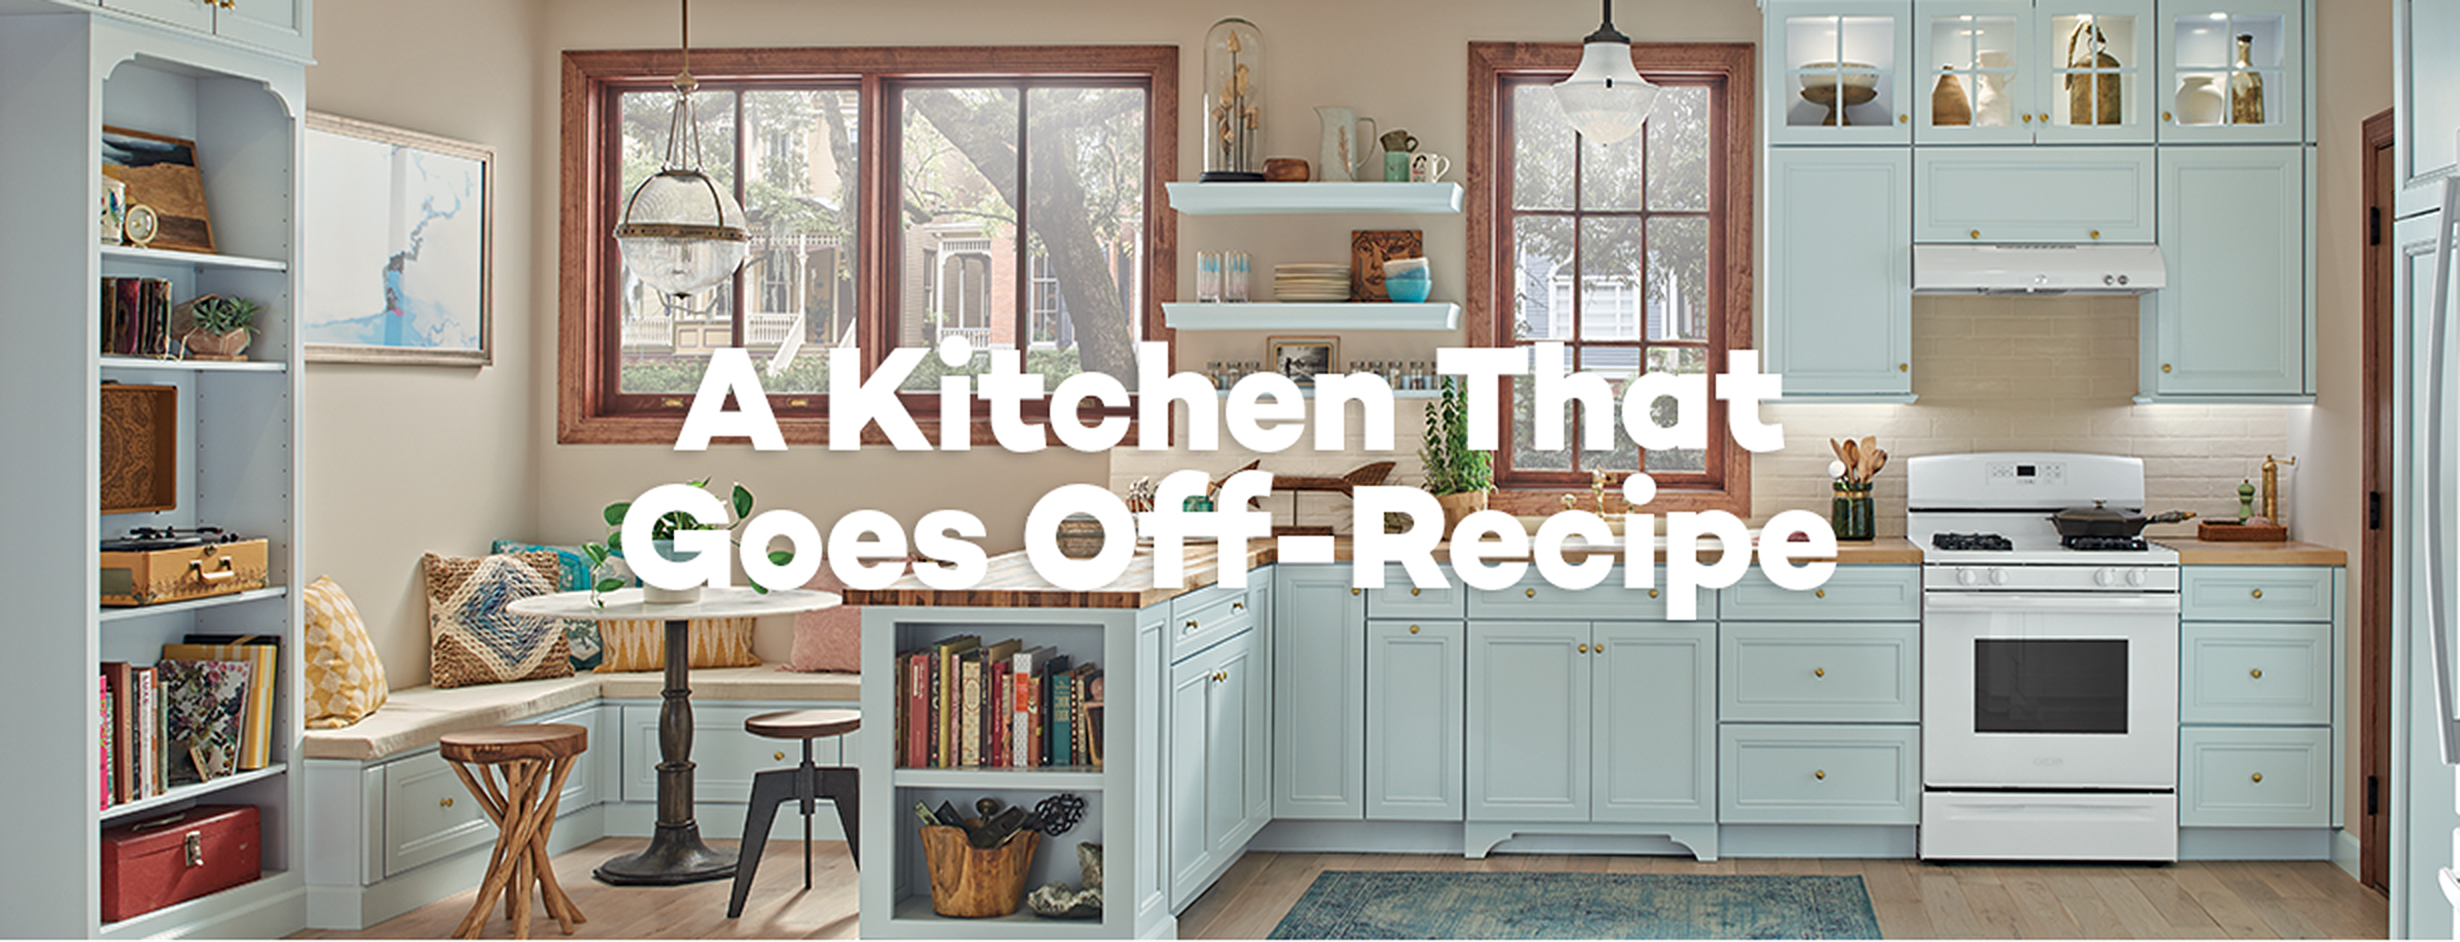 A kitchen That Goes 0ff-Recipe